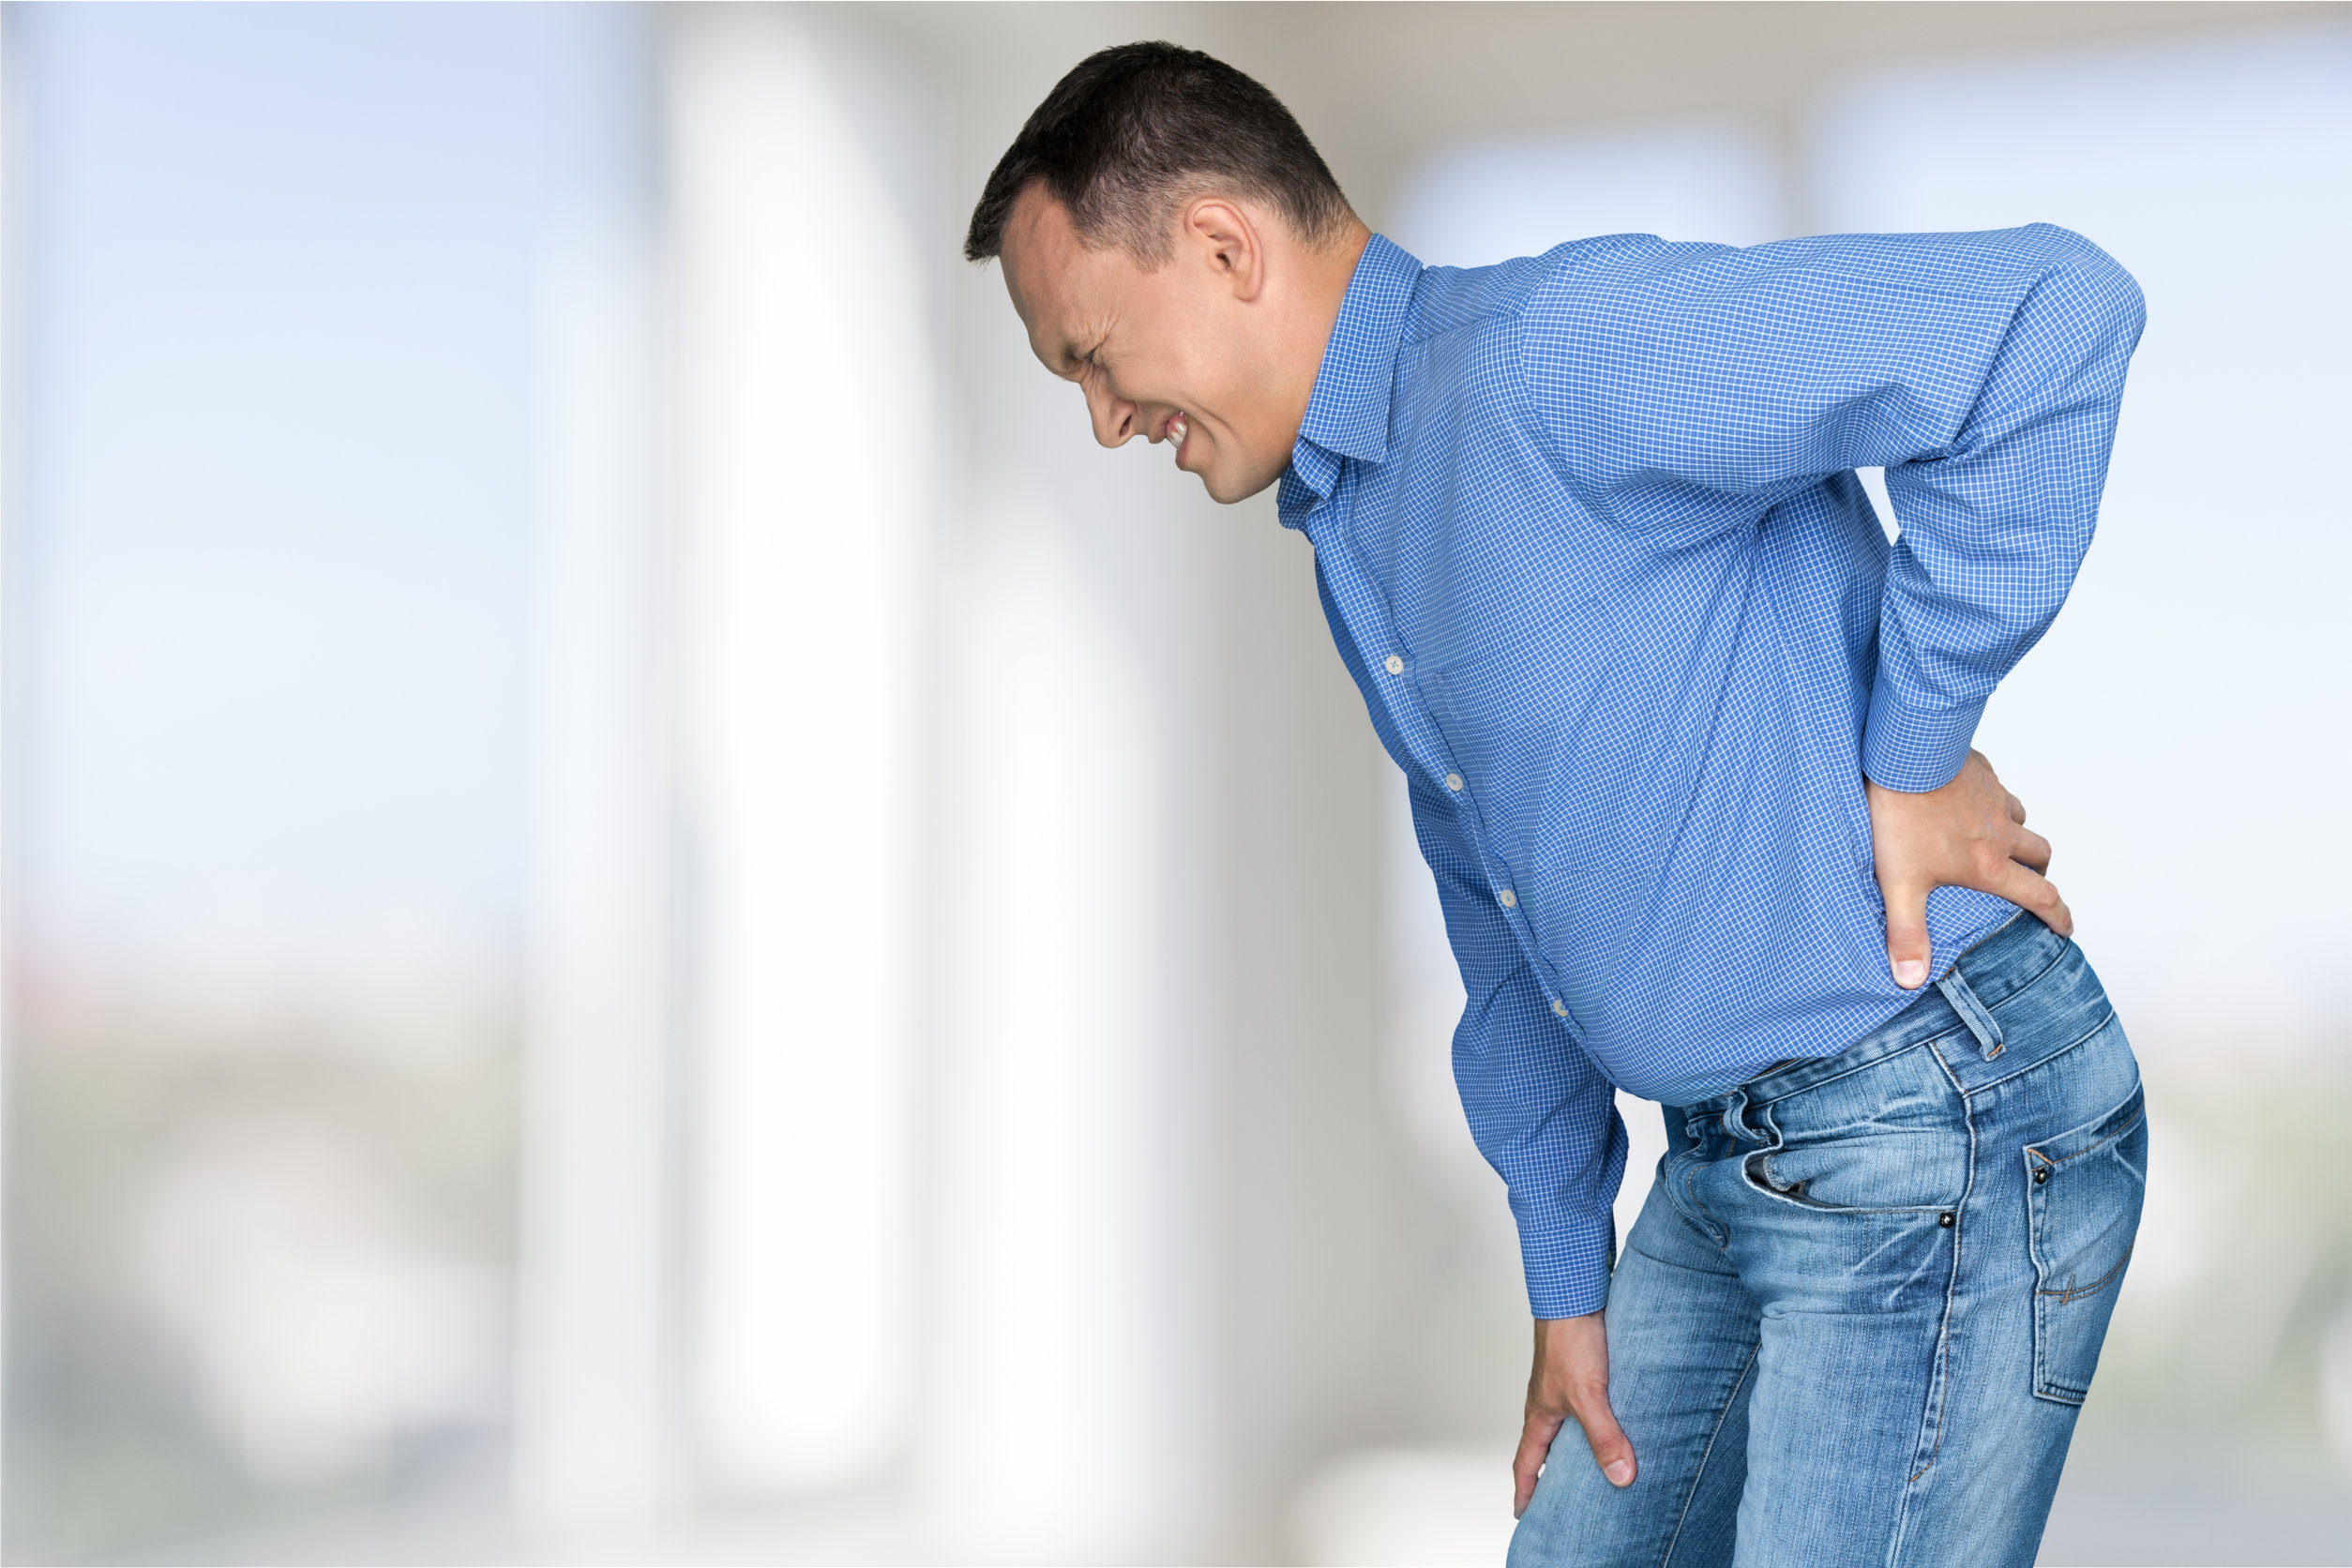 Signs You Should See a Specialist for Your Back Pain